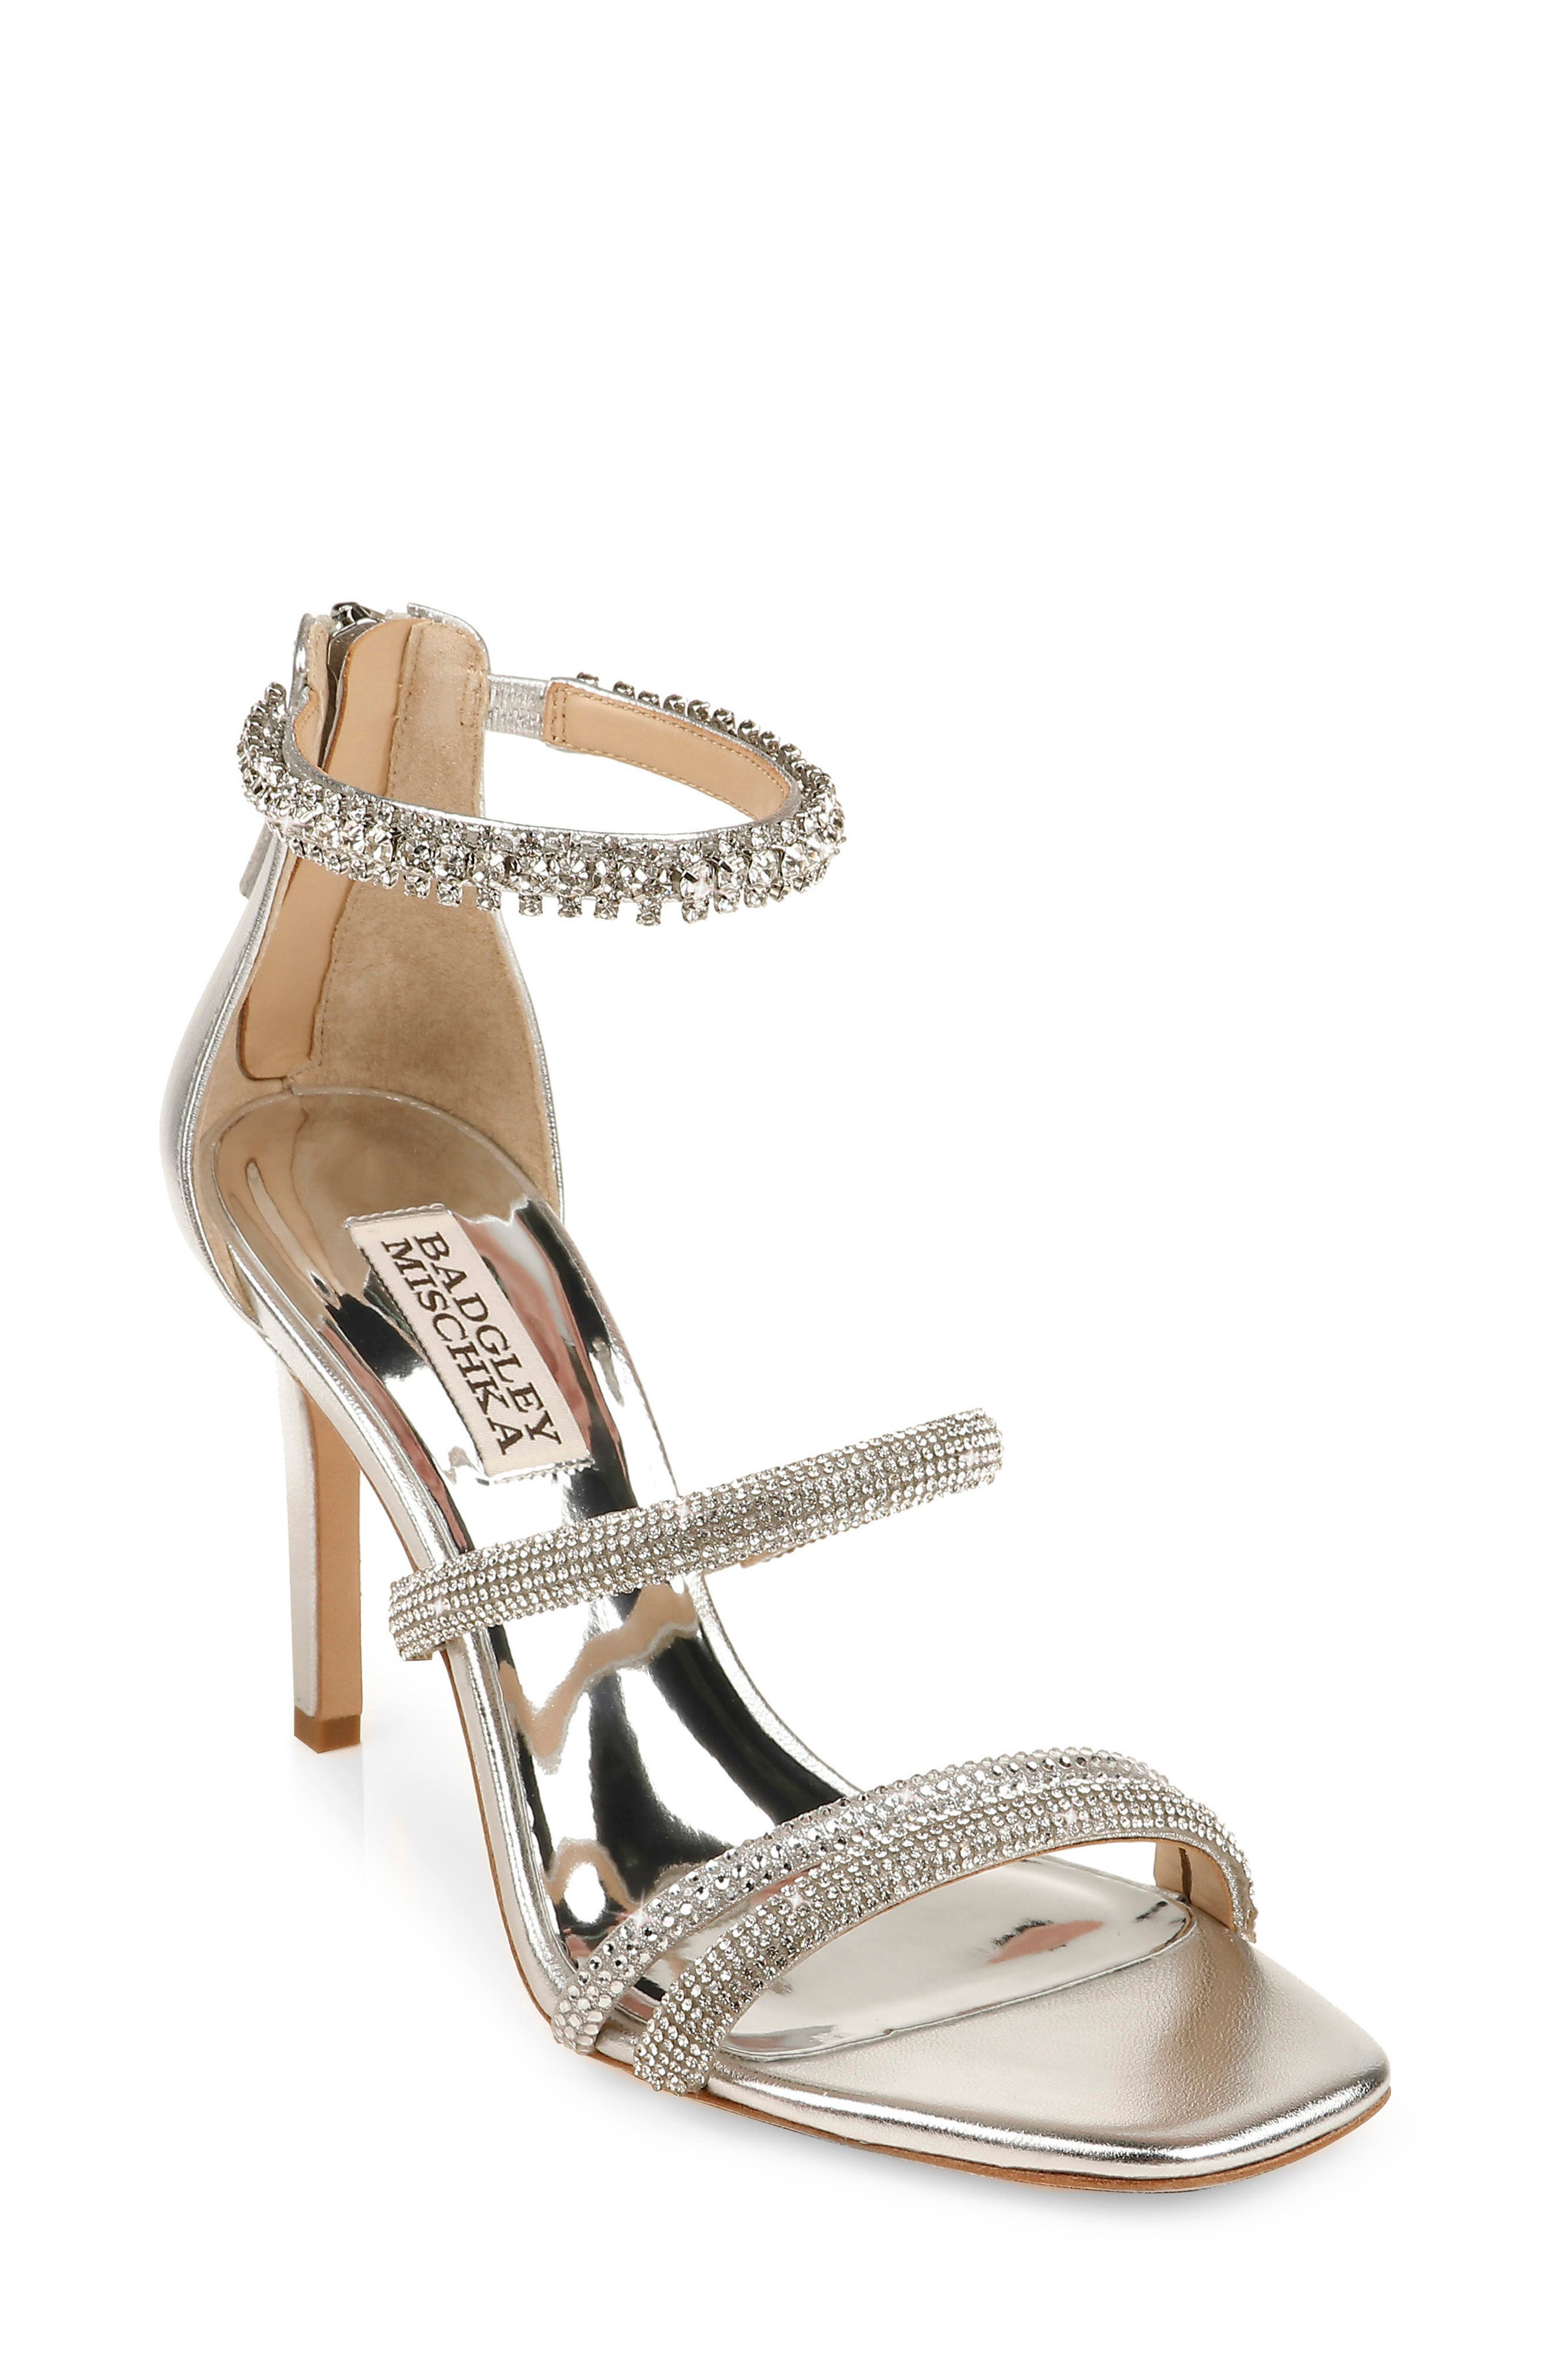 Small crystals dazzle the slim straps of an elegant sandal lifted by a tall tapered heel. Style Name: Badgley Mischka Zulema Embellished Strappy Sandal (Women). Style Number: 6020303. Available in stores.